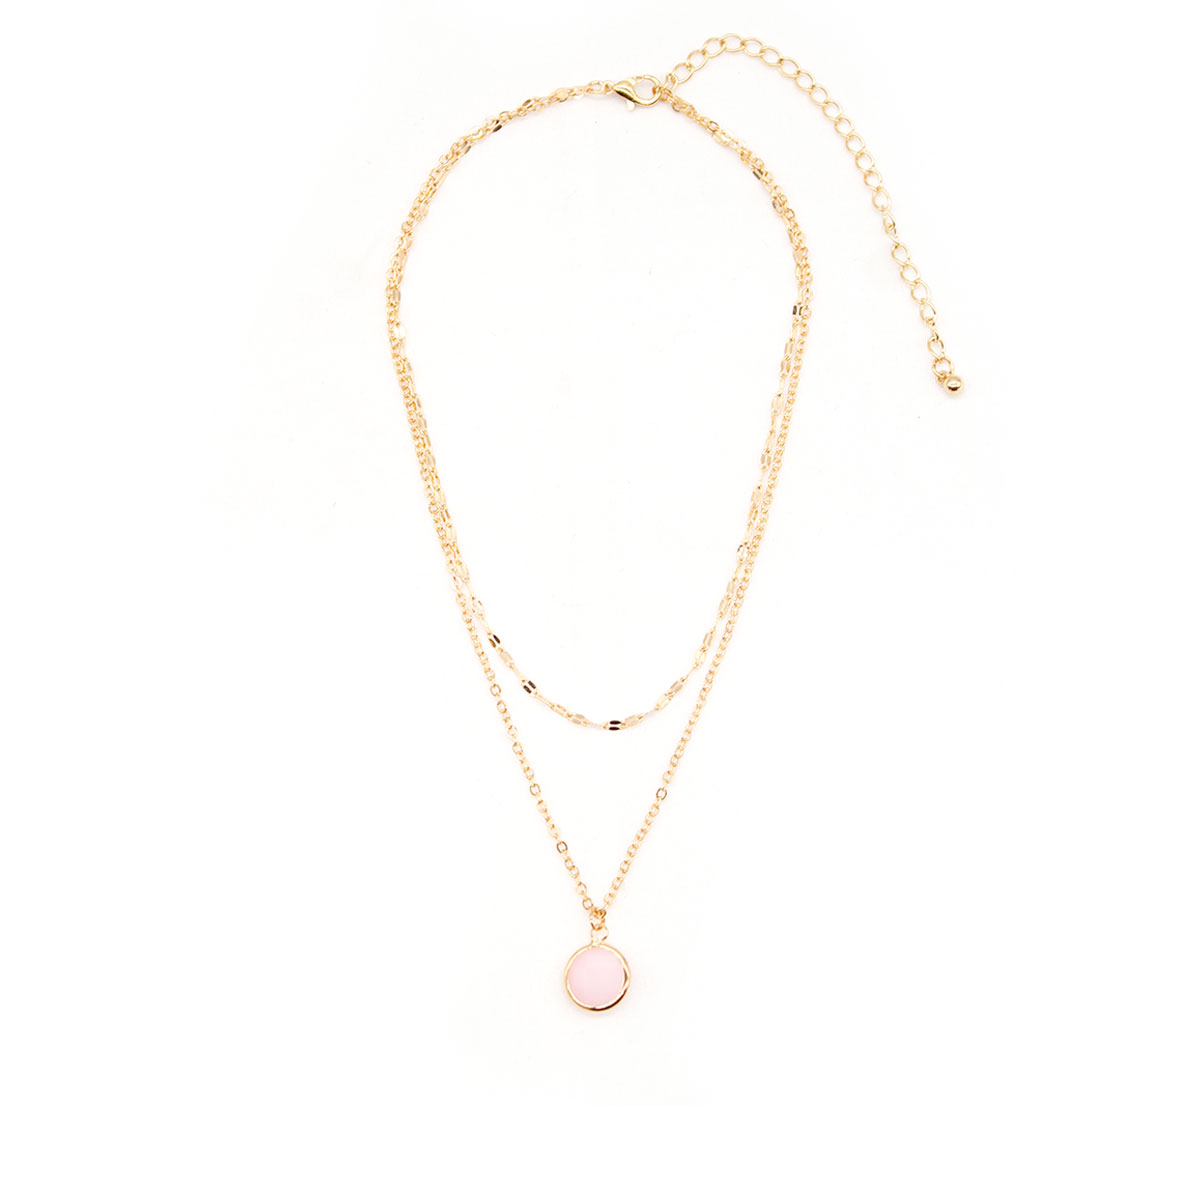 Fashion Layered Choker Chain Necklace Charms Women Cute Alloy Stone Pendant Clavicle Necklace Jewelry in Pendant Necklaces from Jewelry Accessories